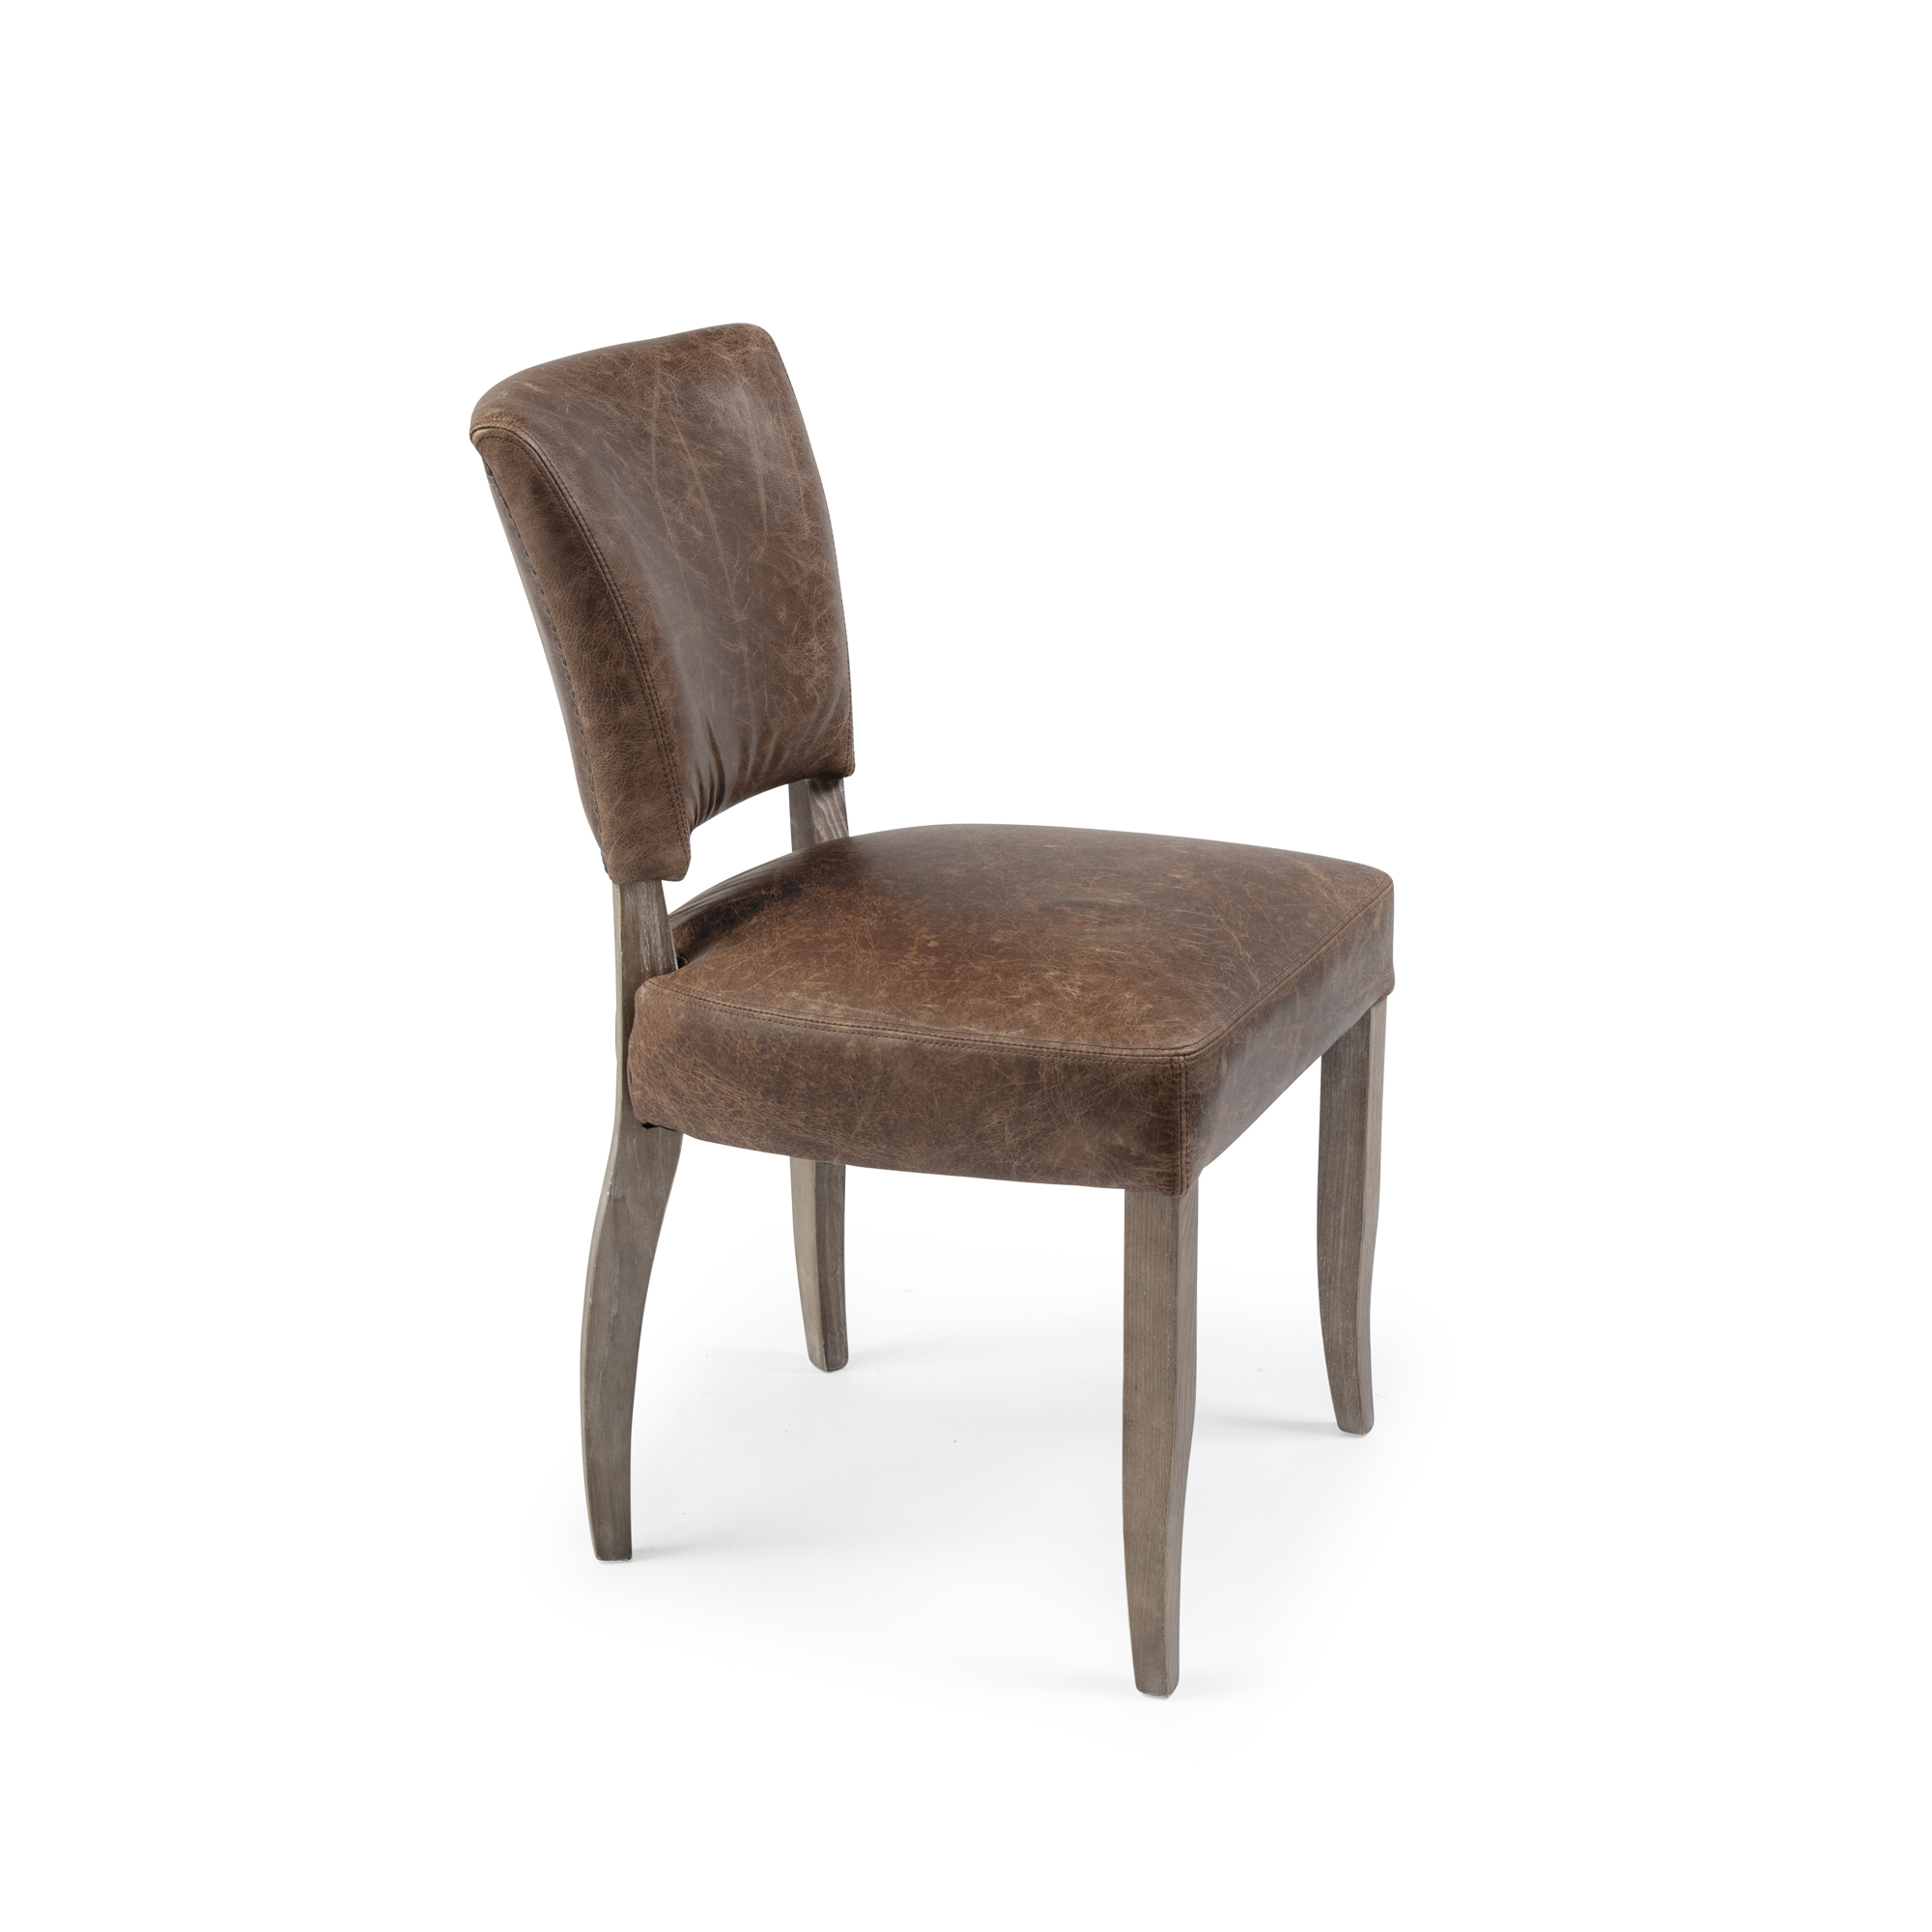 Wilmslow Vintage Leather Tan Dining Chairs (Set of 2)